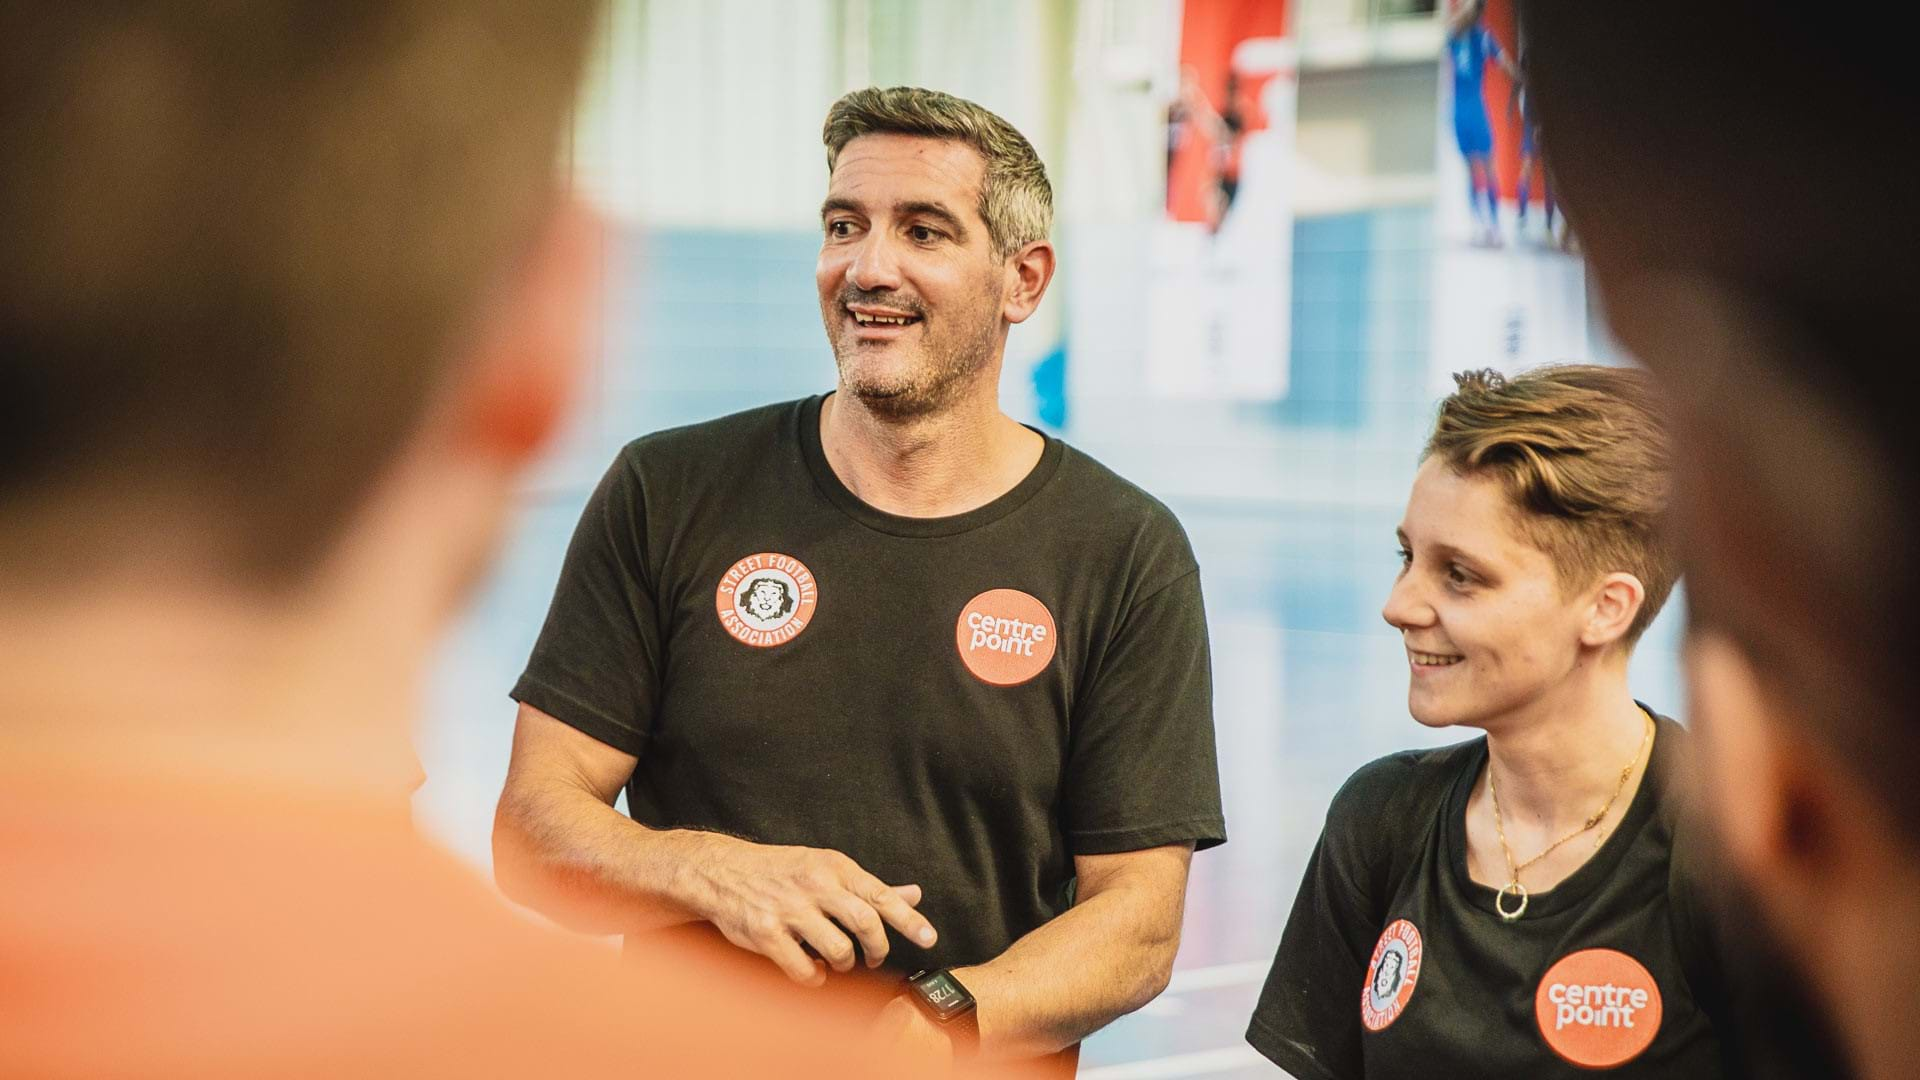 Becca, a Centrepoint Team England volunteer coach, with Craig, Centrepoint staff, at St George's Park, Burton.